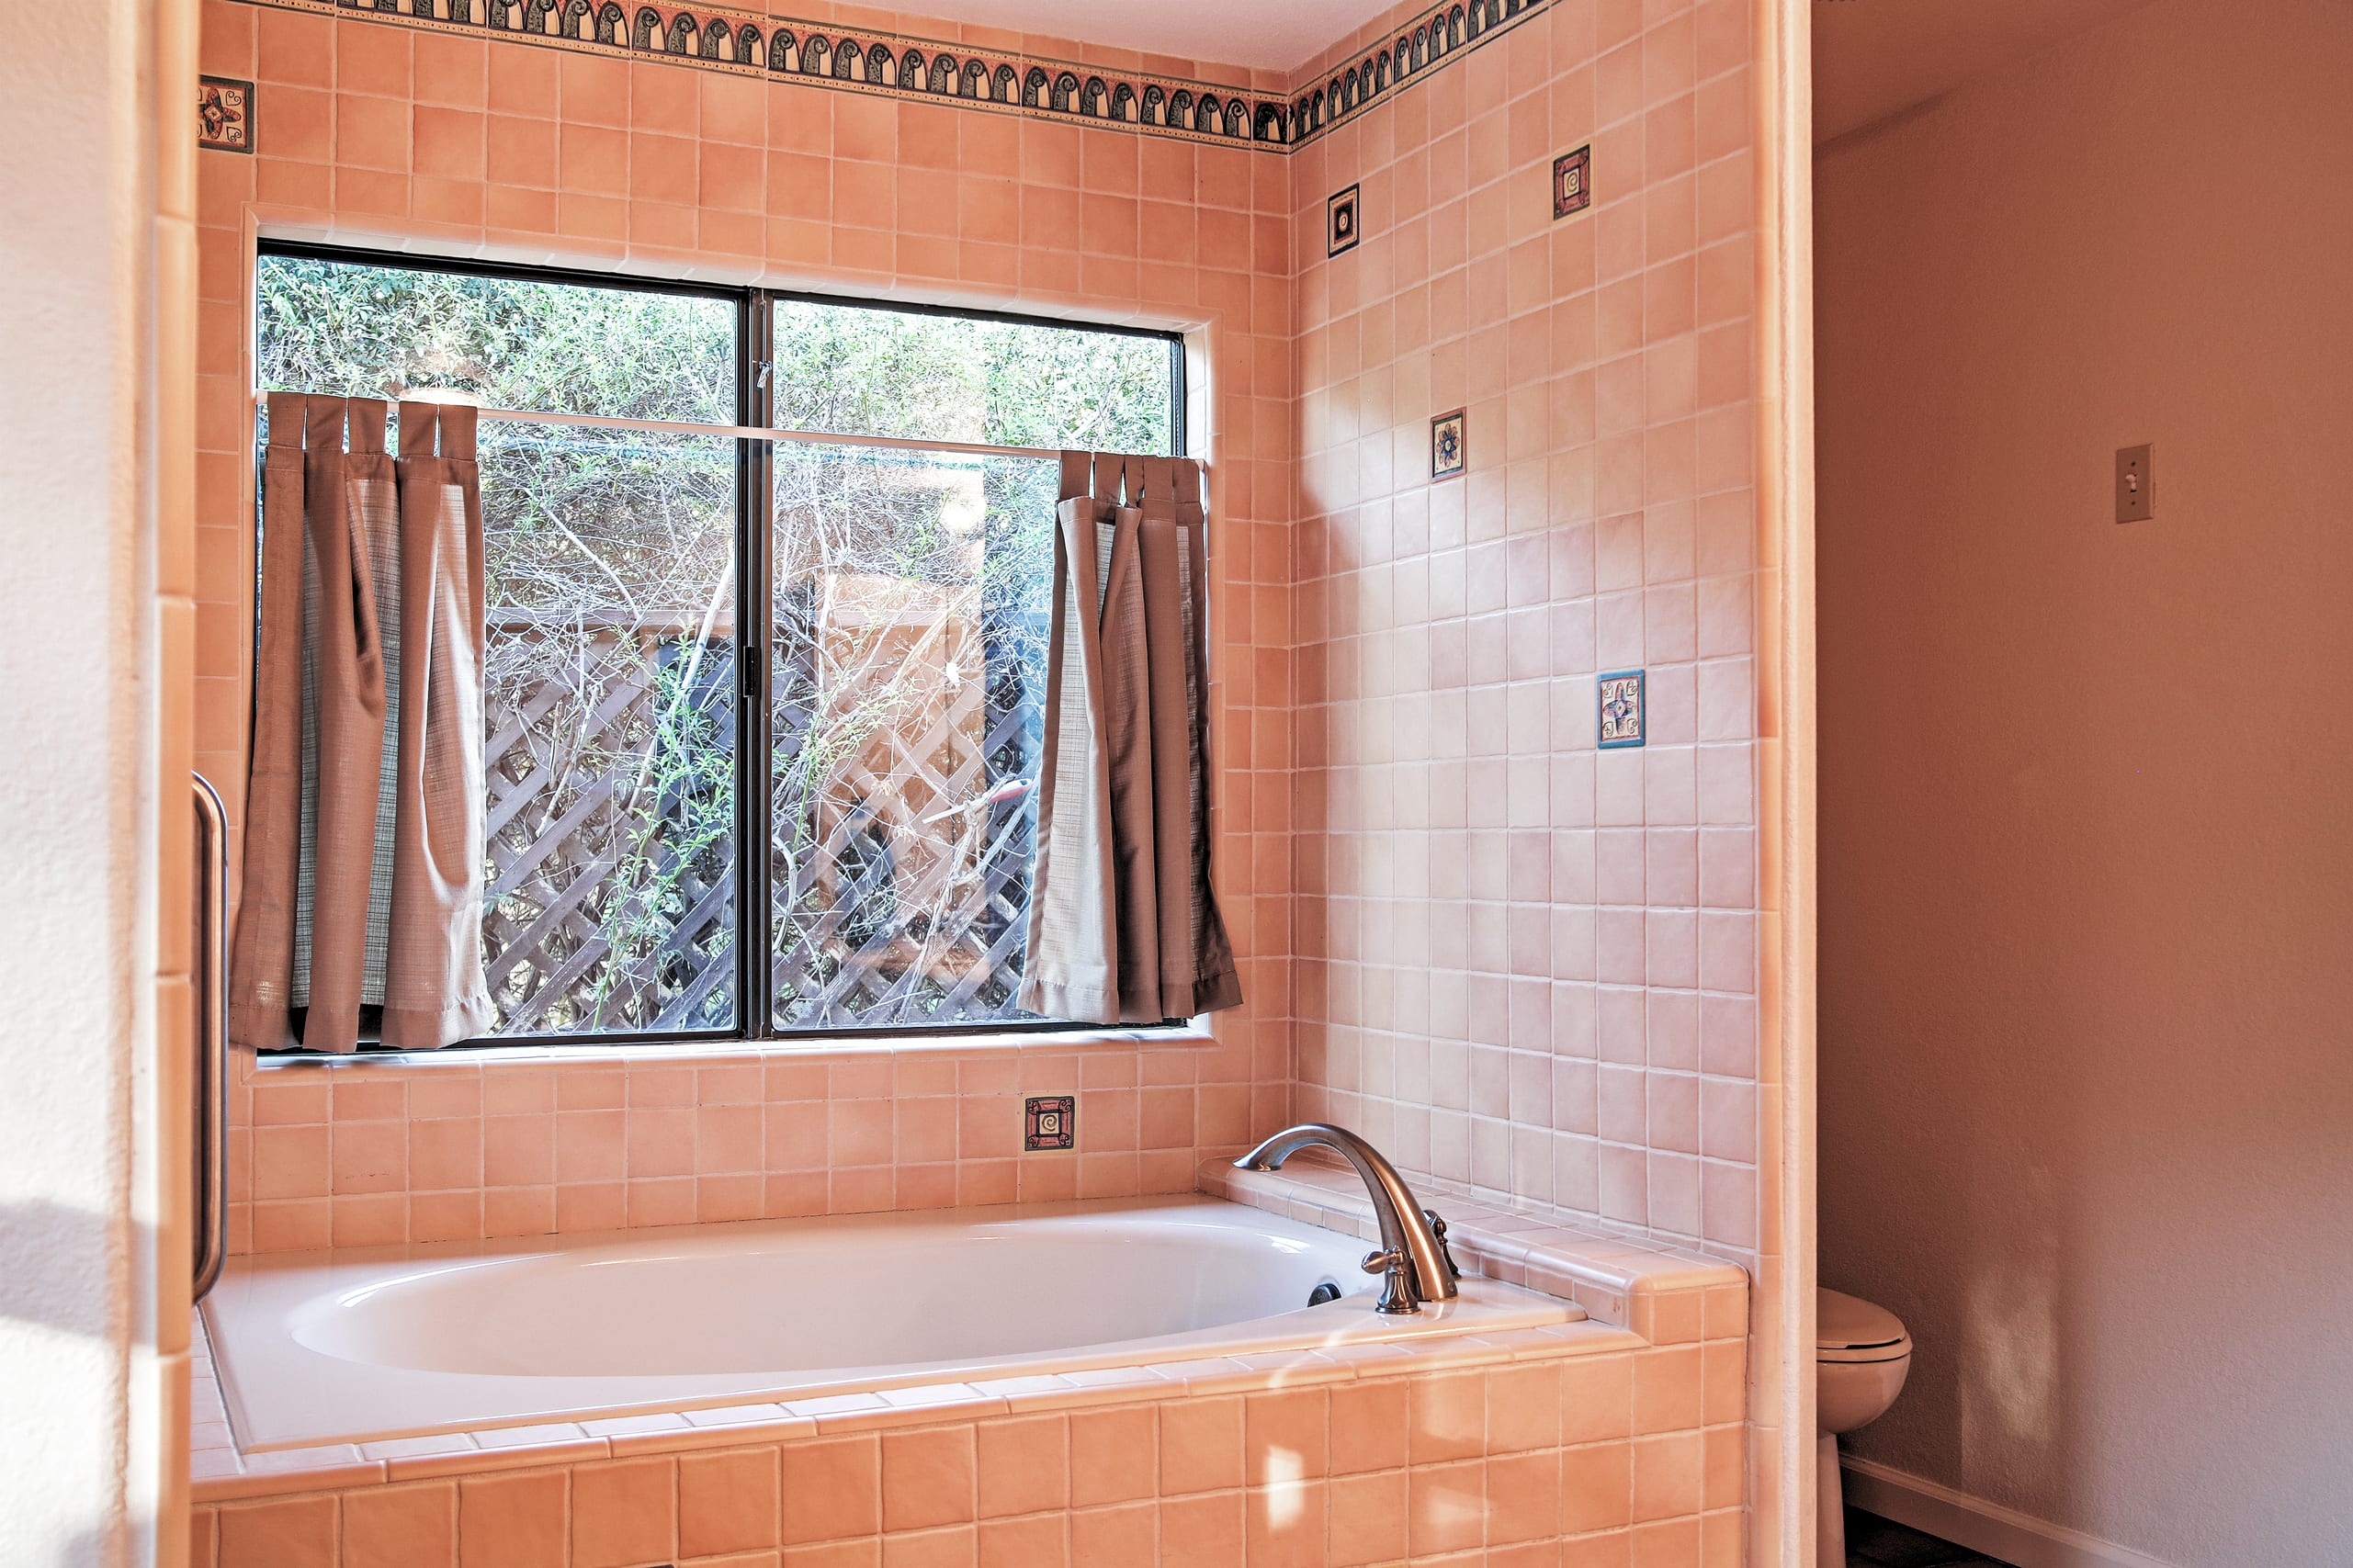 Take your time cleaning up while relaxing in the nice bath tub.